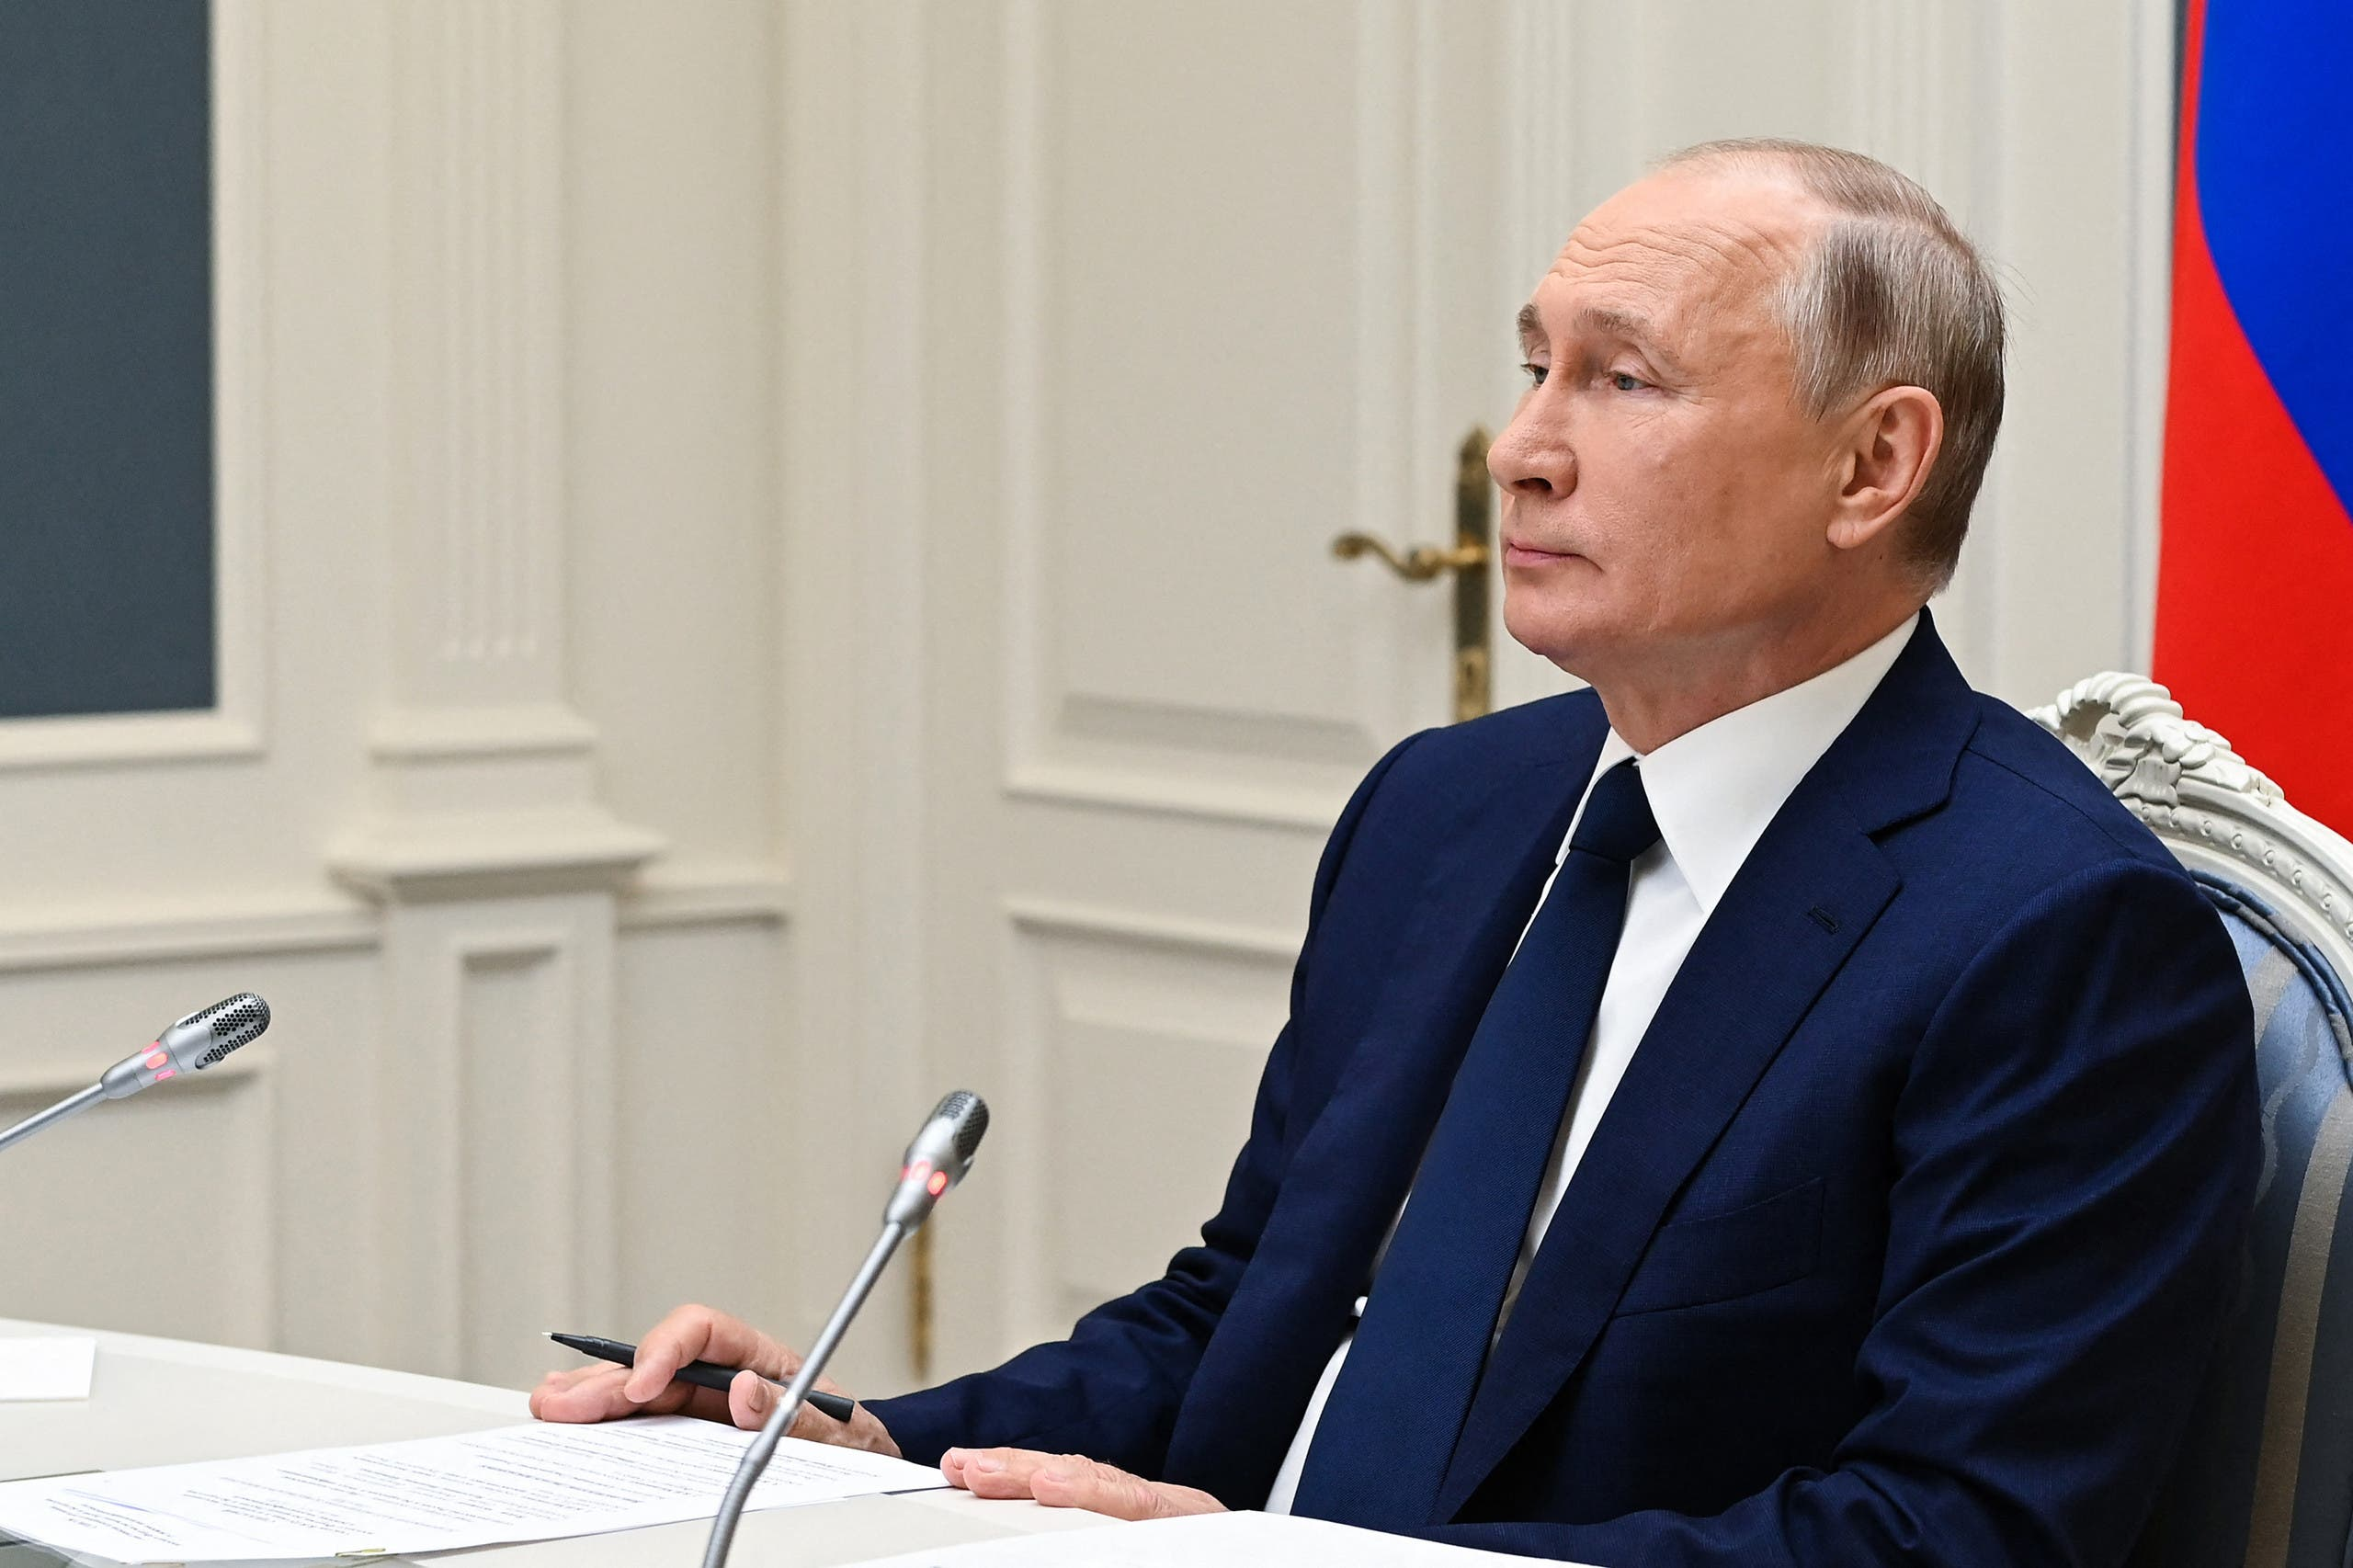 Russian President Vladimir Putin attends a session of the 8th Forum of Regions of Belarus and Russia via video link at the Kremlin in Moscow on July 1, 2021. (Stock image)